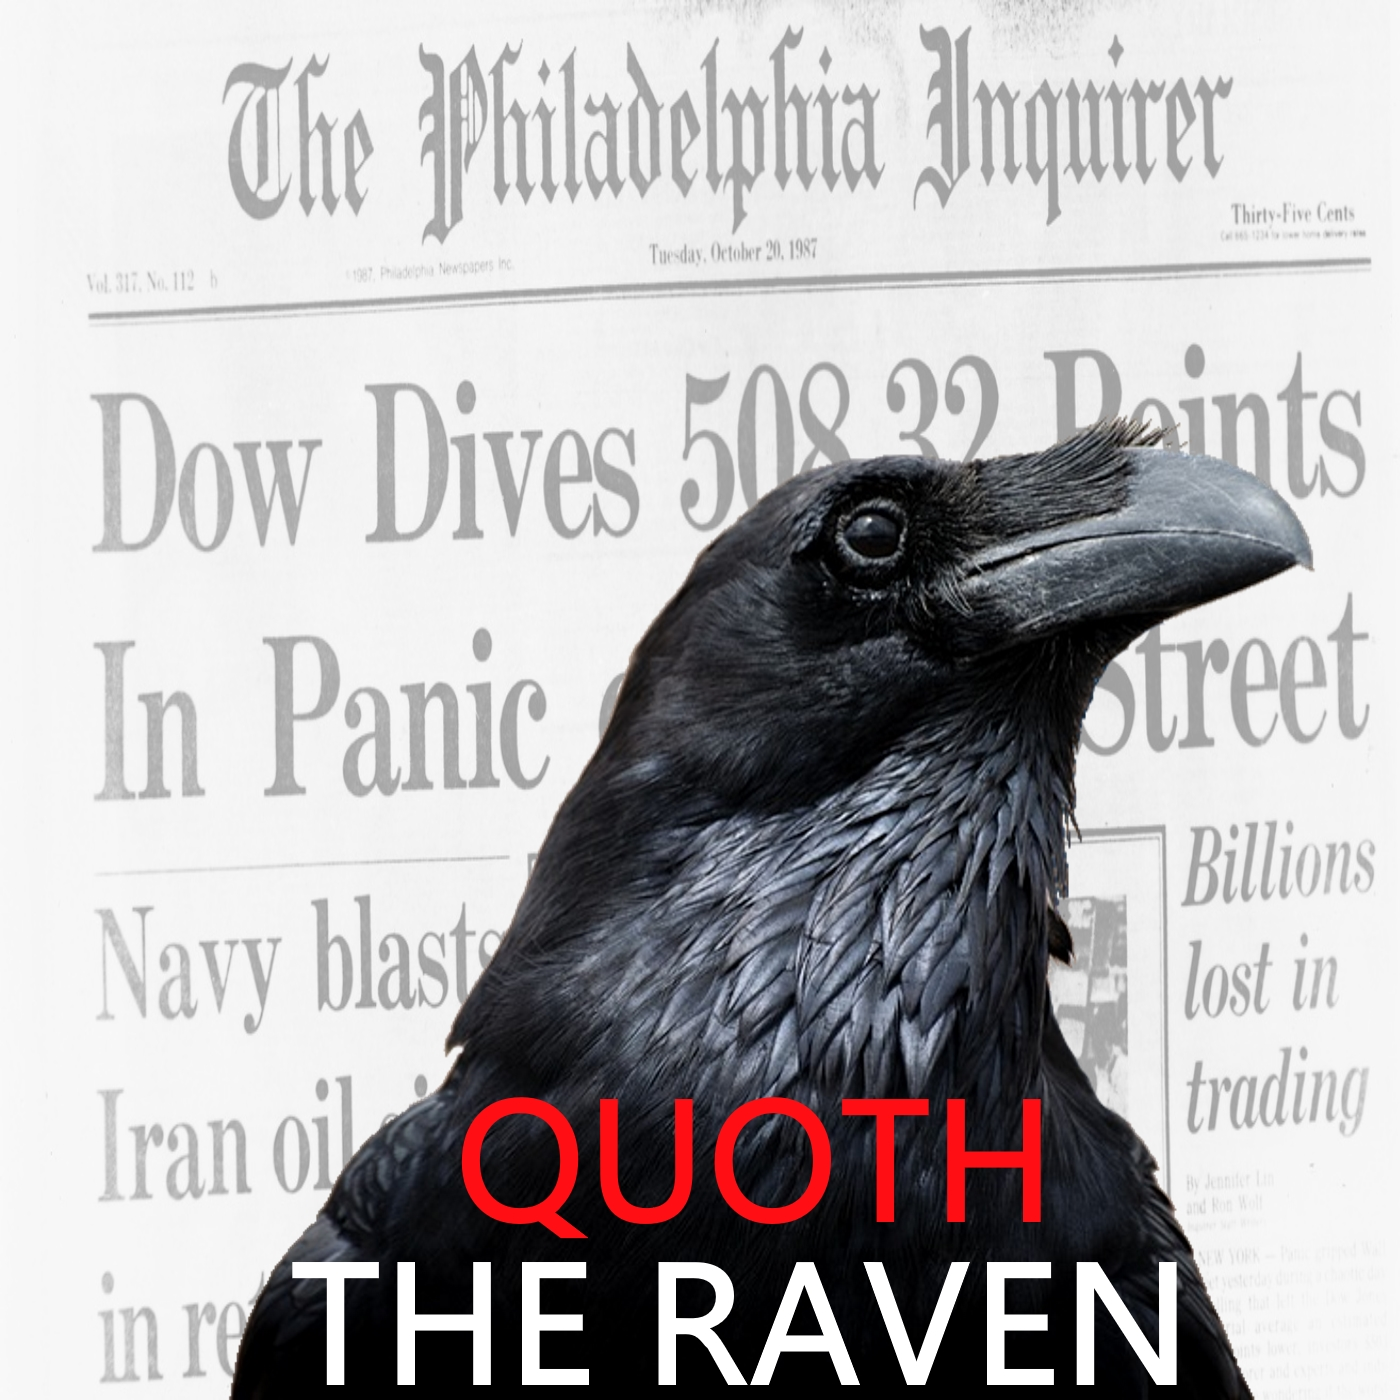 Quoth the Raven #126  - Tesla Talk: Hedging and Hypocrisy Edition